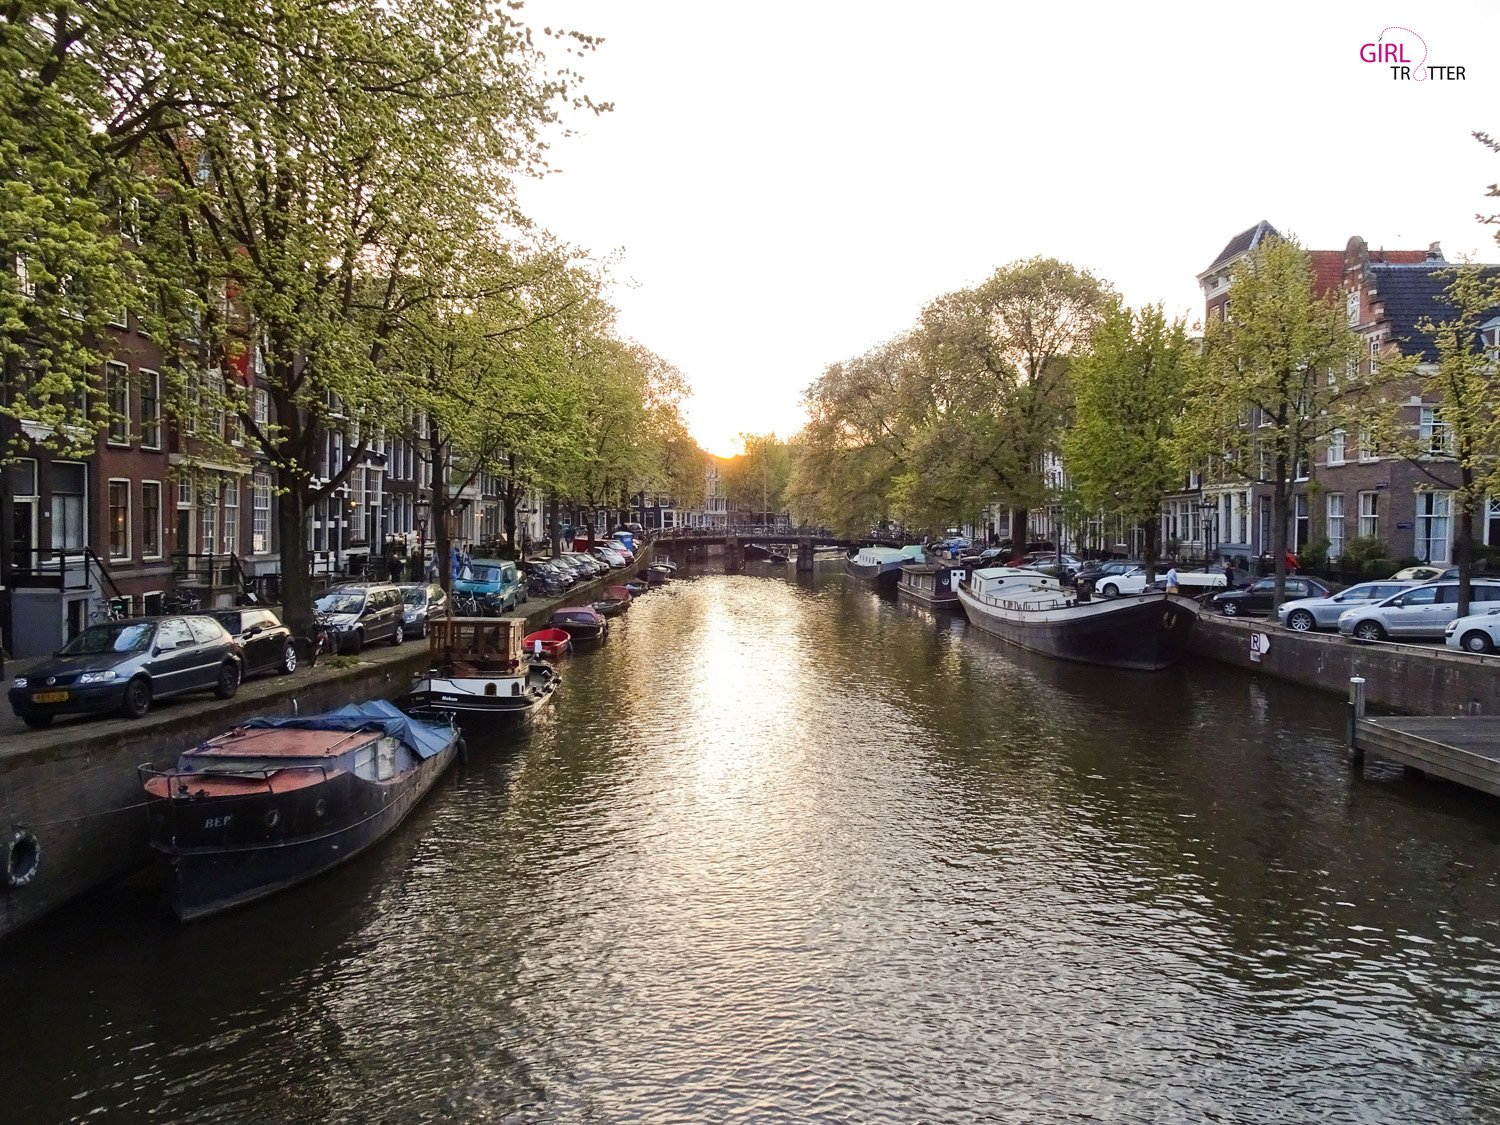 Visiter les canaux Amsterdam - Girltrotter